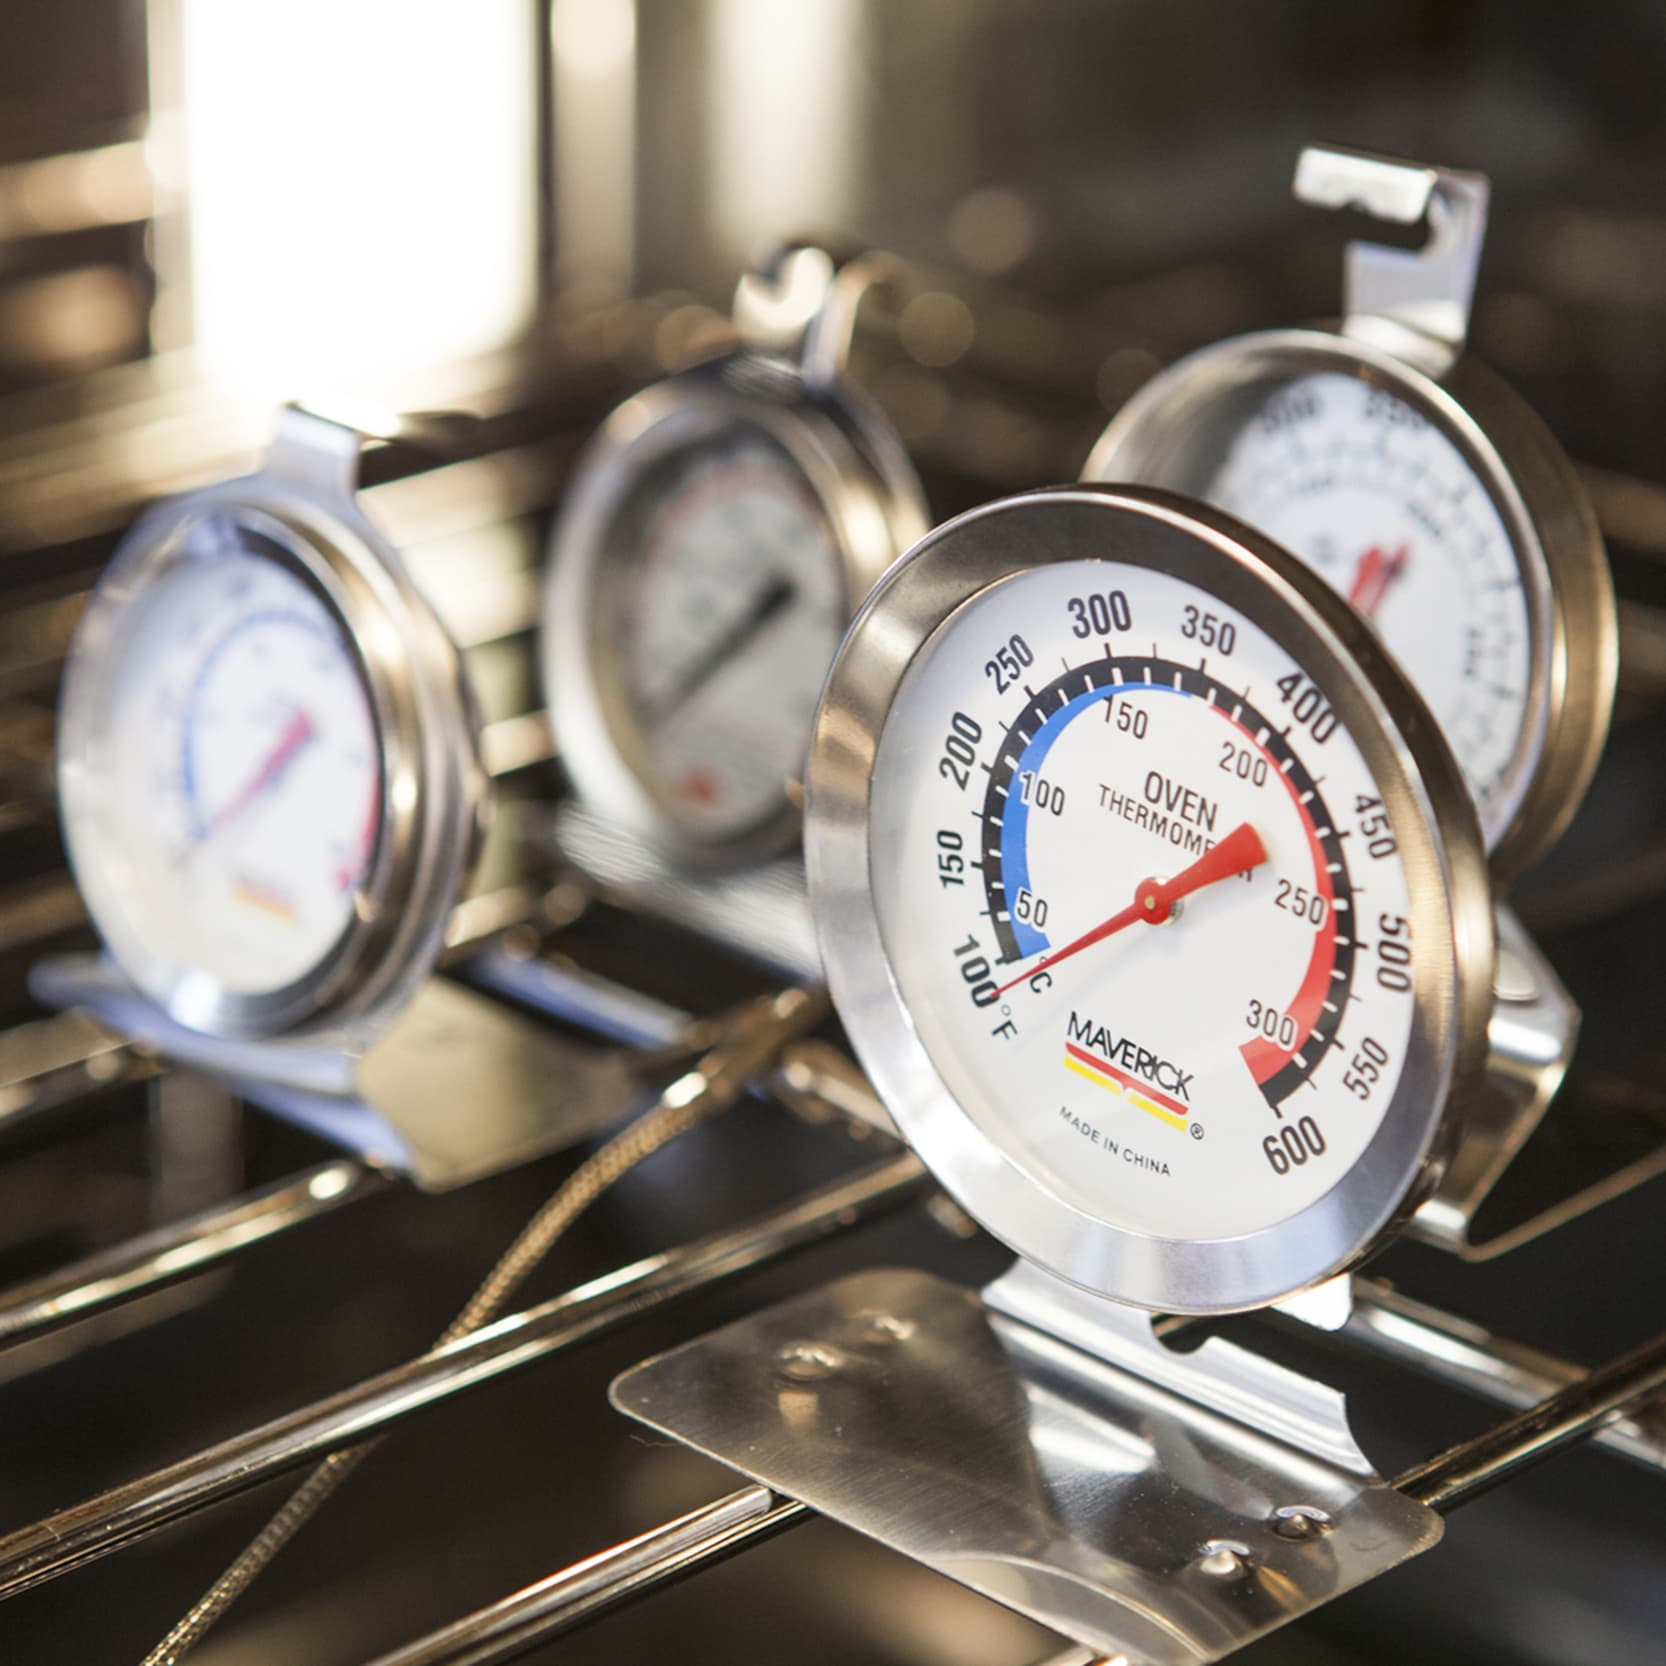 Finding a Good Oven Thermometer